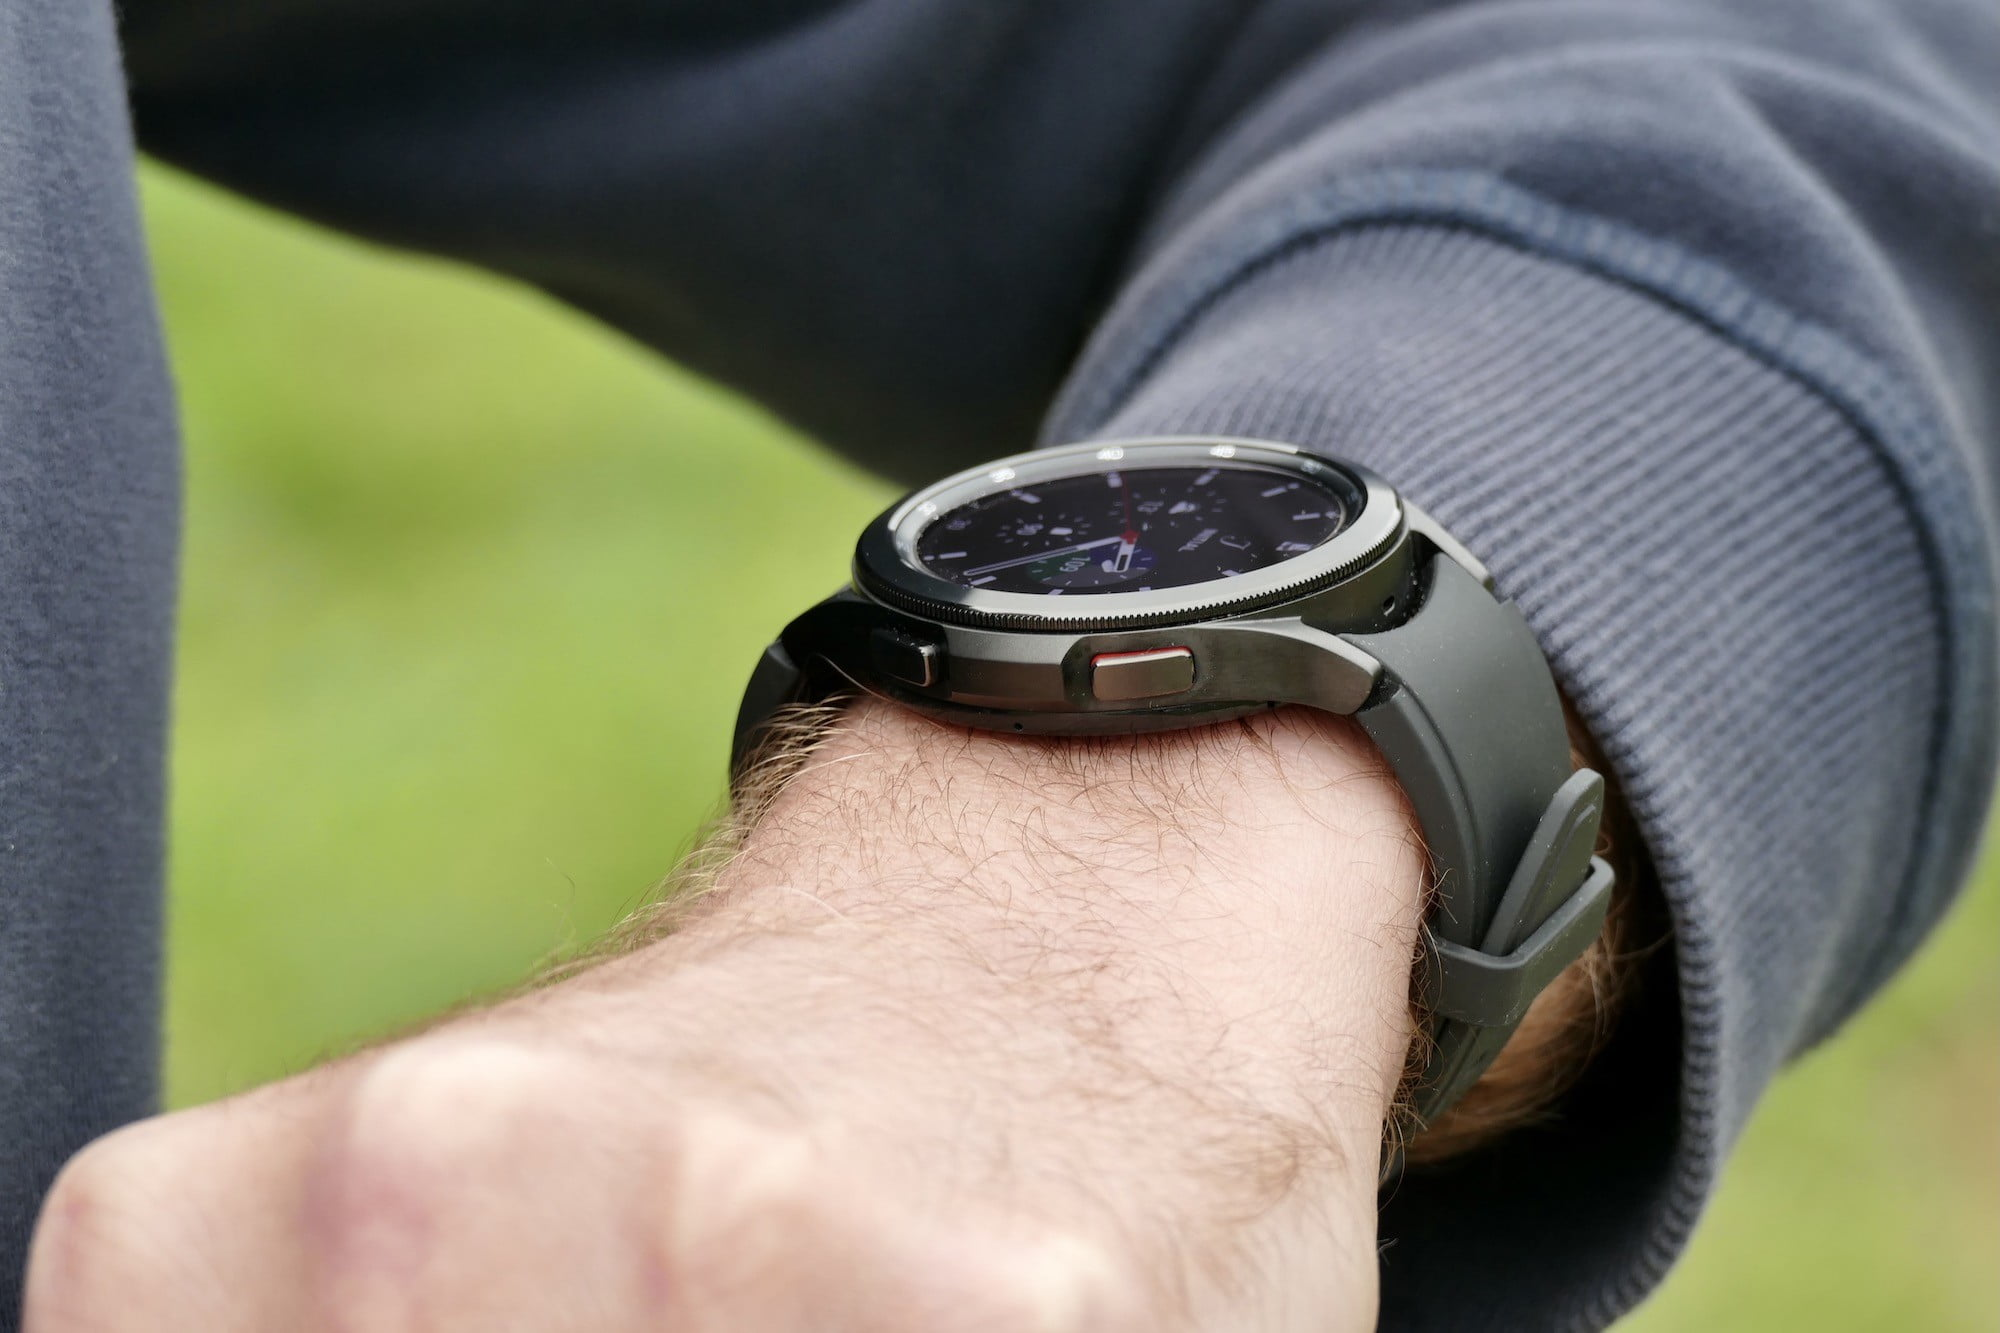 Galaxy Watch 4 Classic on the wrist, seen from the side.